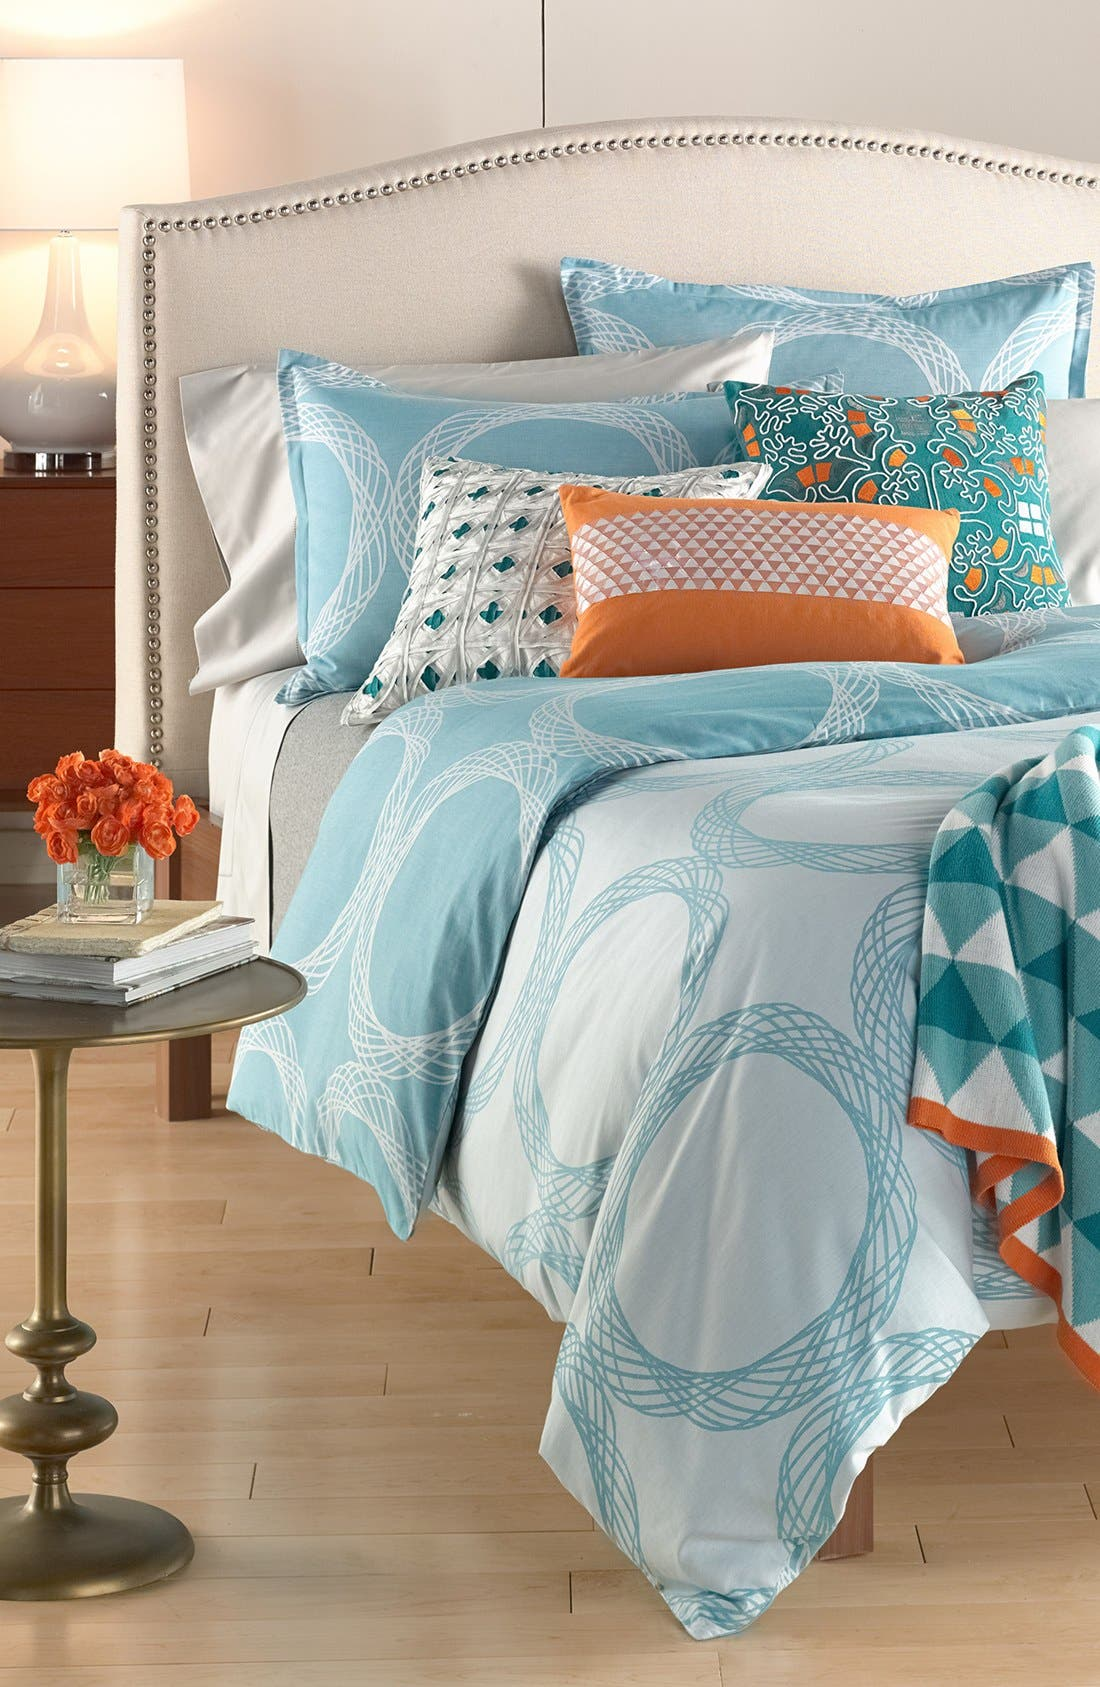 Nordstrom at Home & Levtex Bedding Collection, Main, color, 440